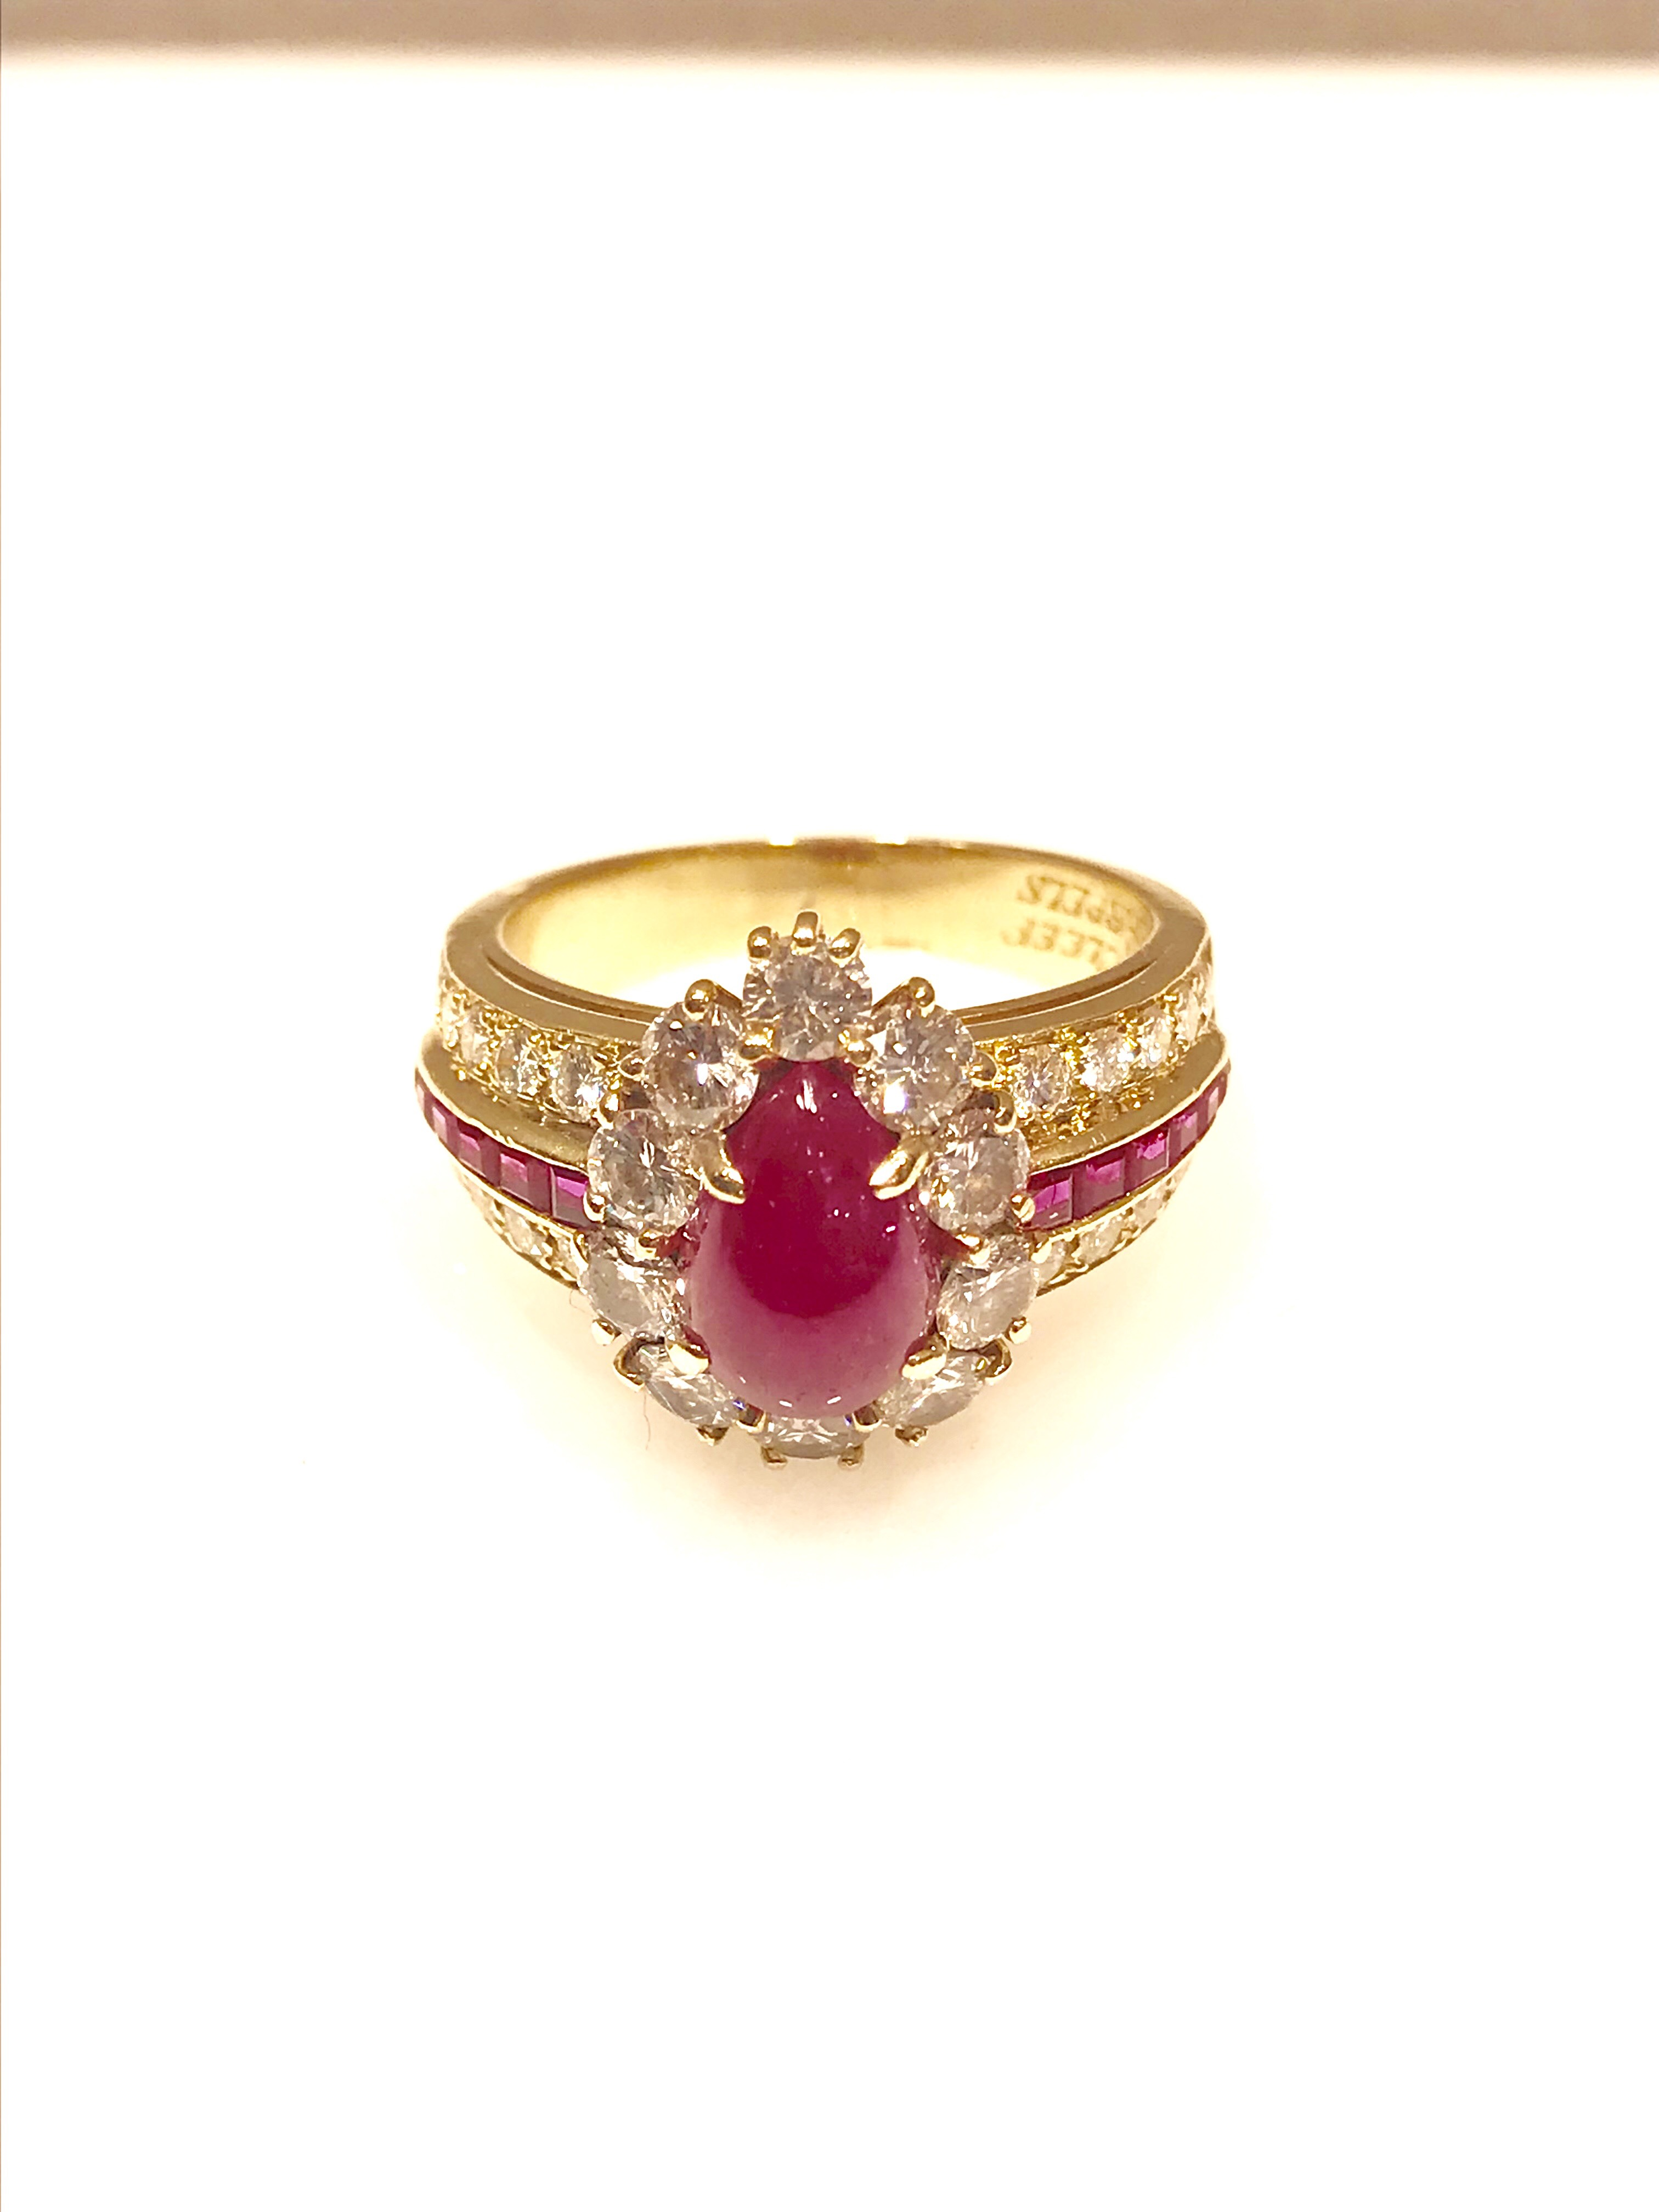 van cleef & arpels cabochon ruby and diamond yellow gold ring